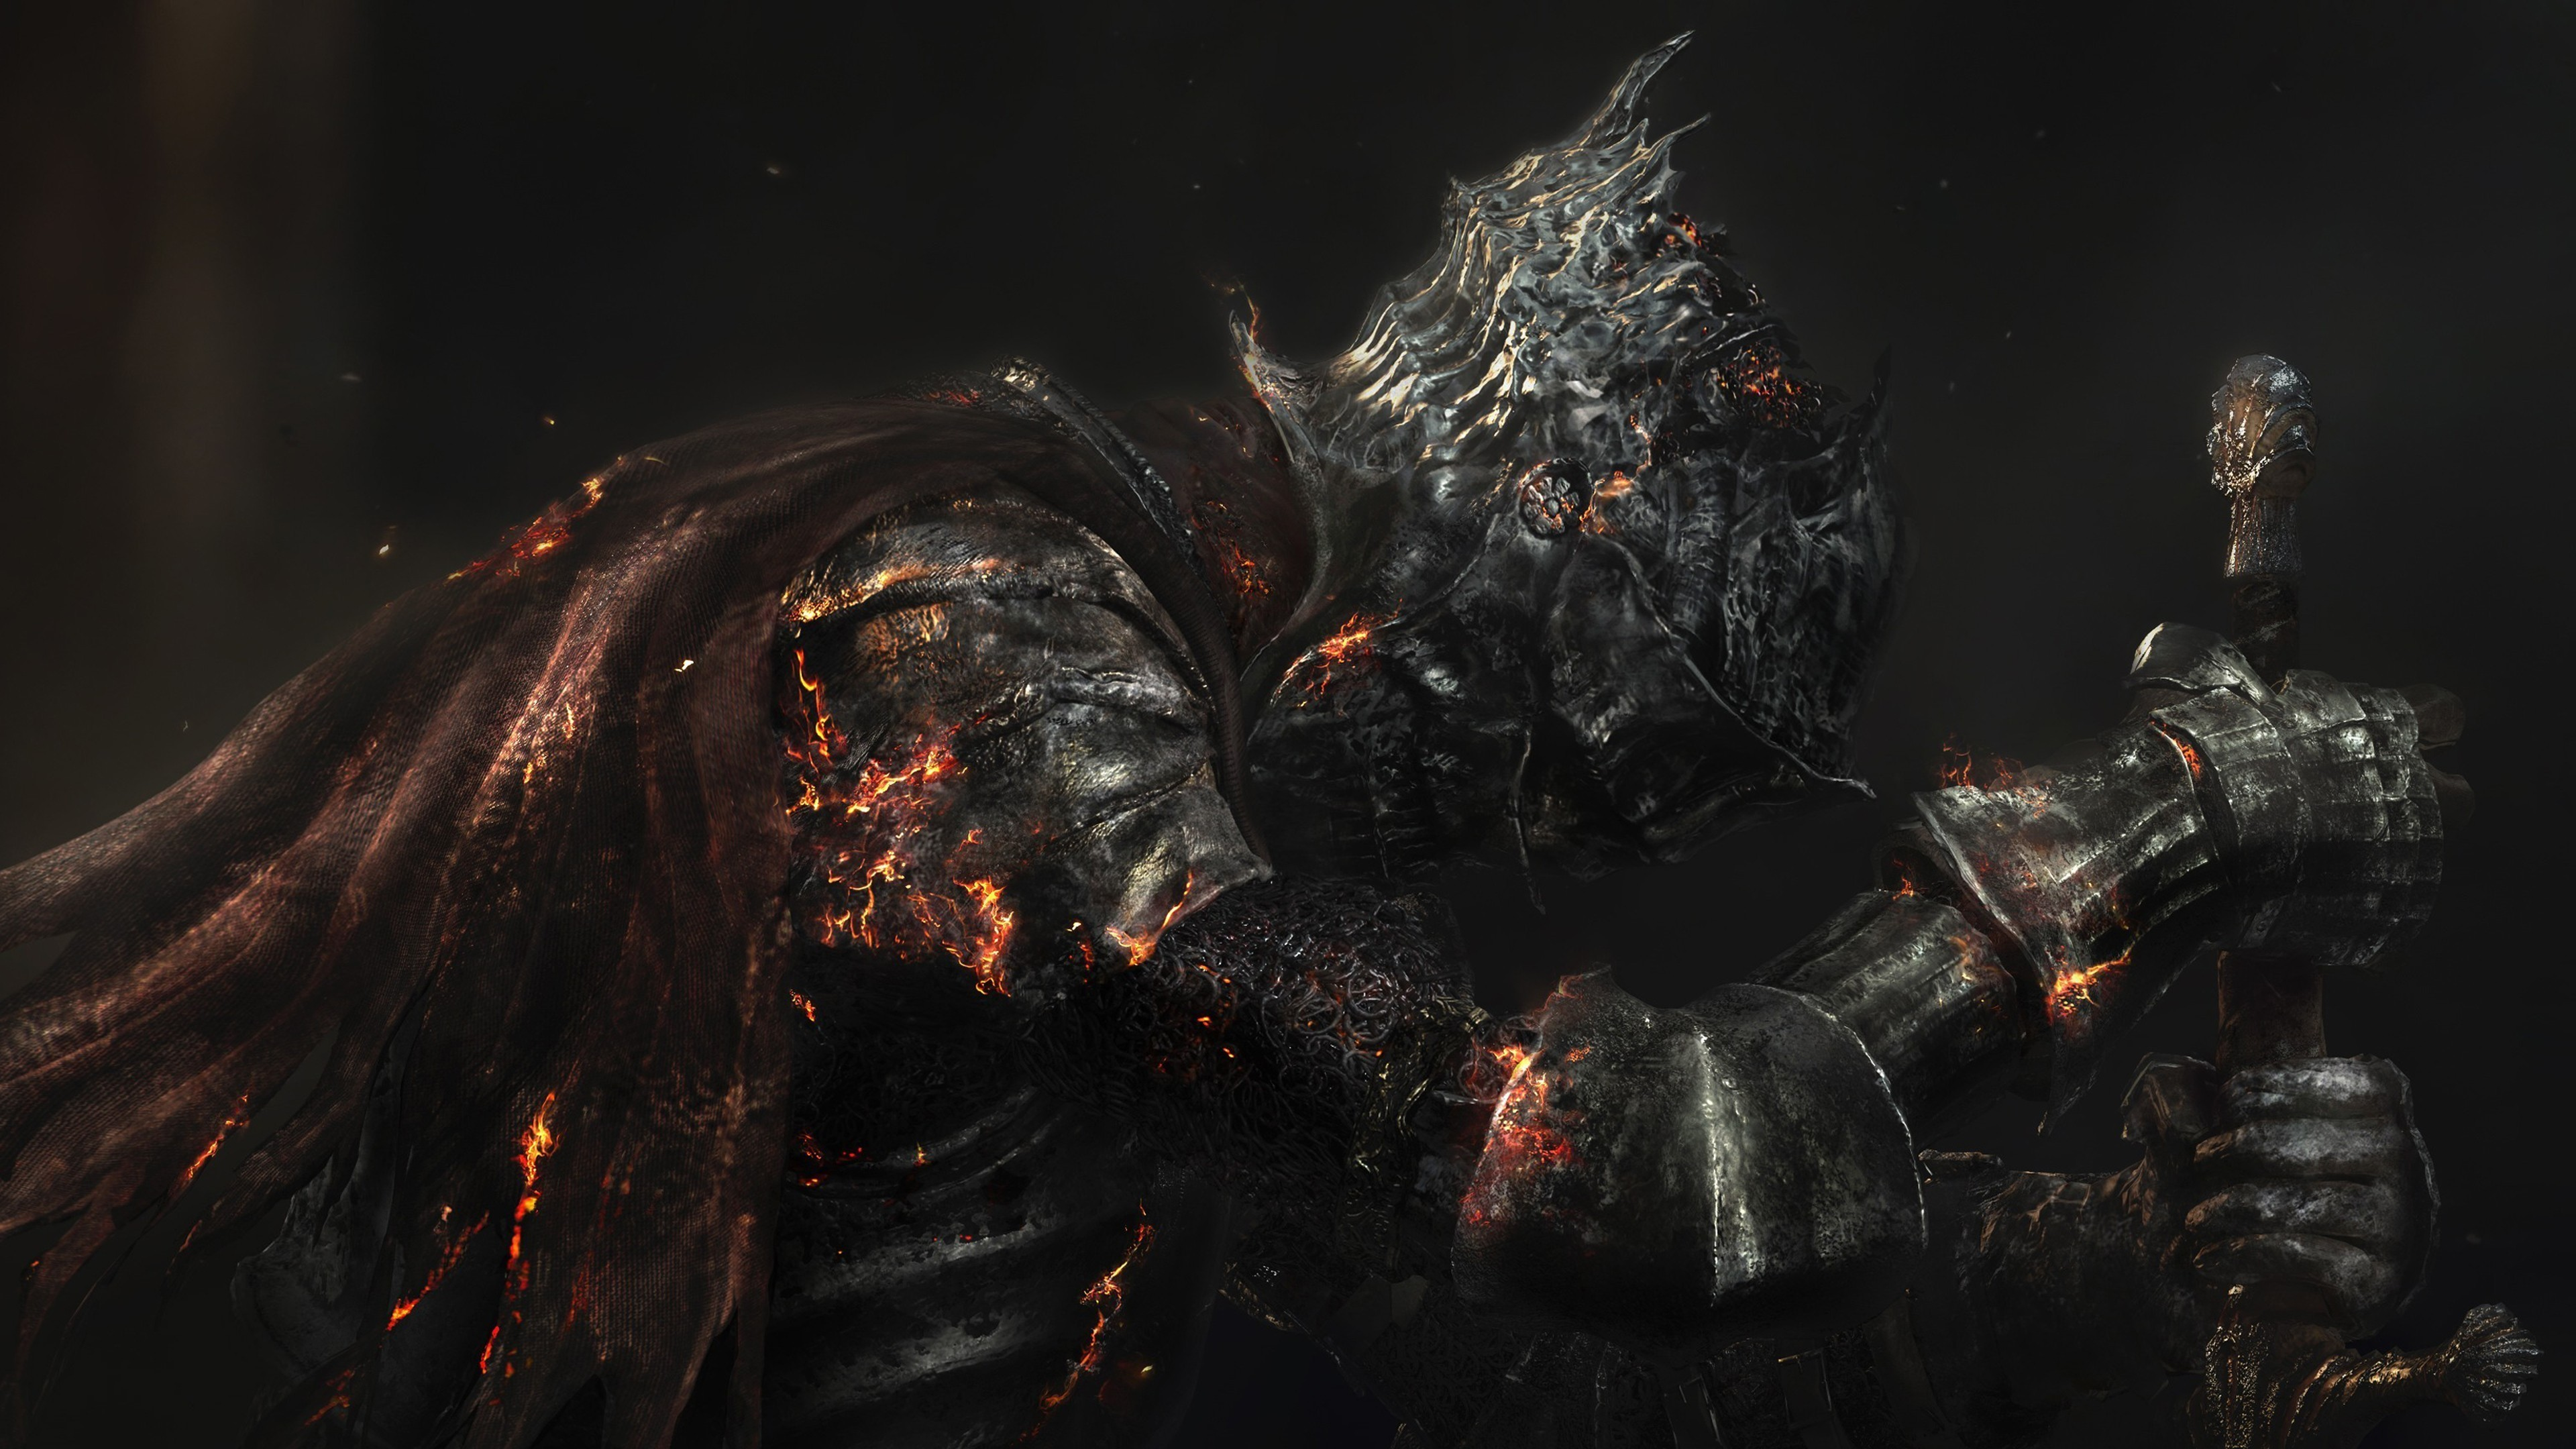 3840x2160 and this one 4k dark souls wallpaper for whoever wanted one